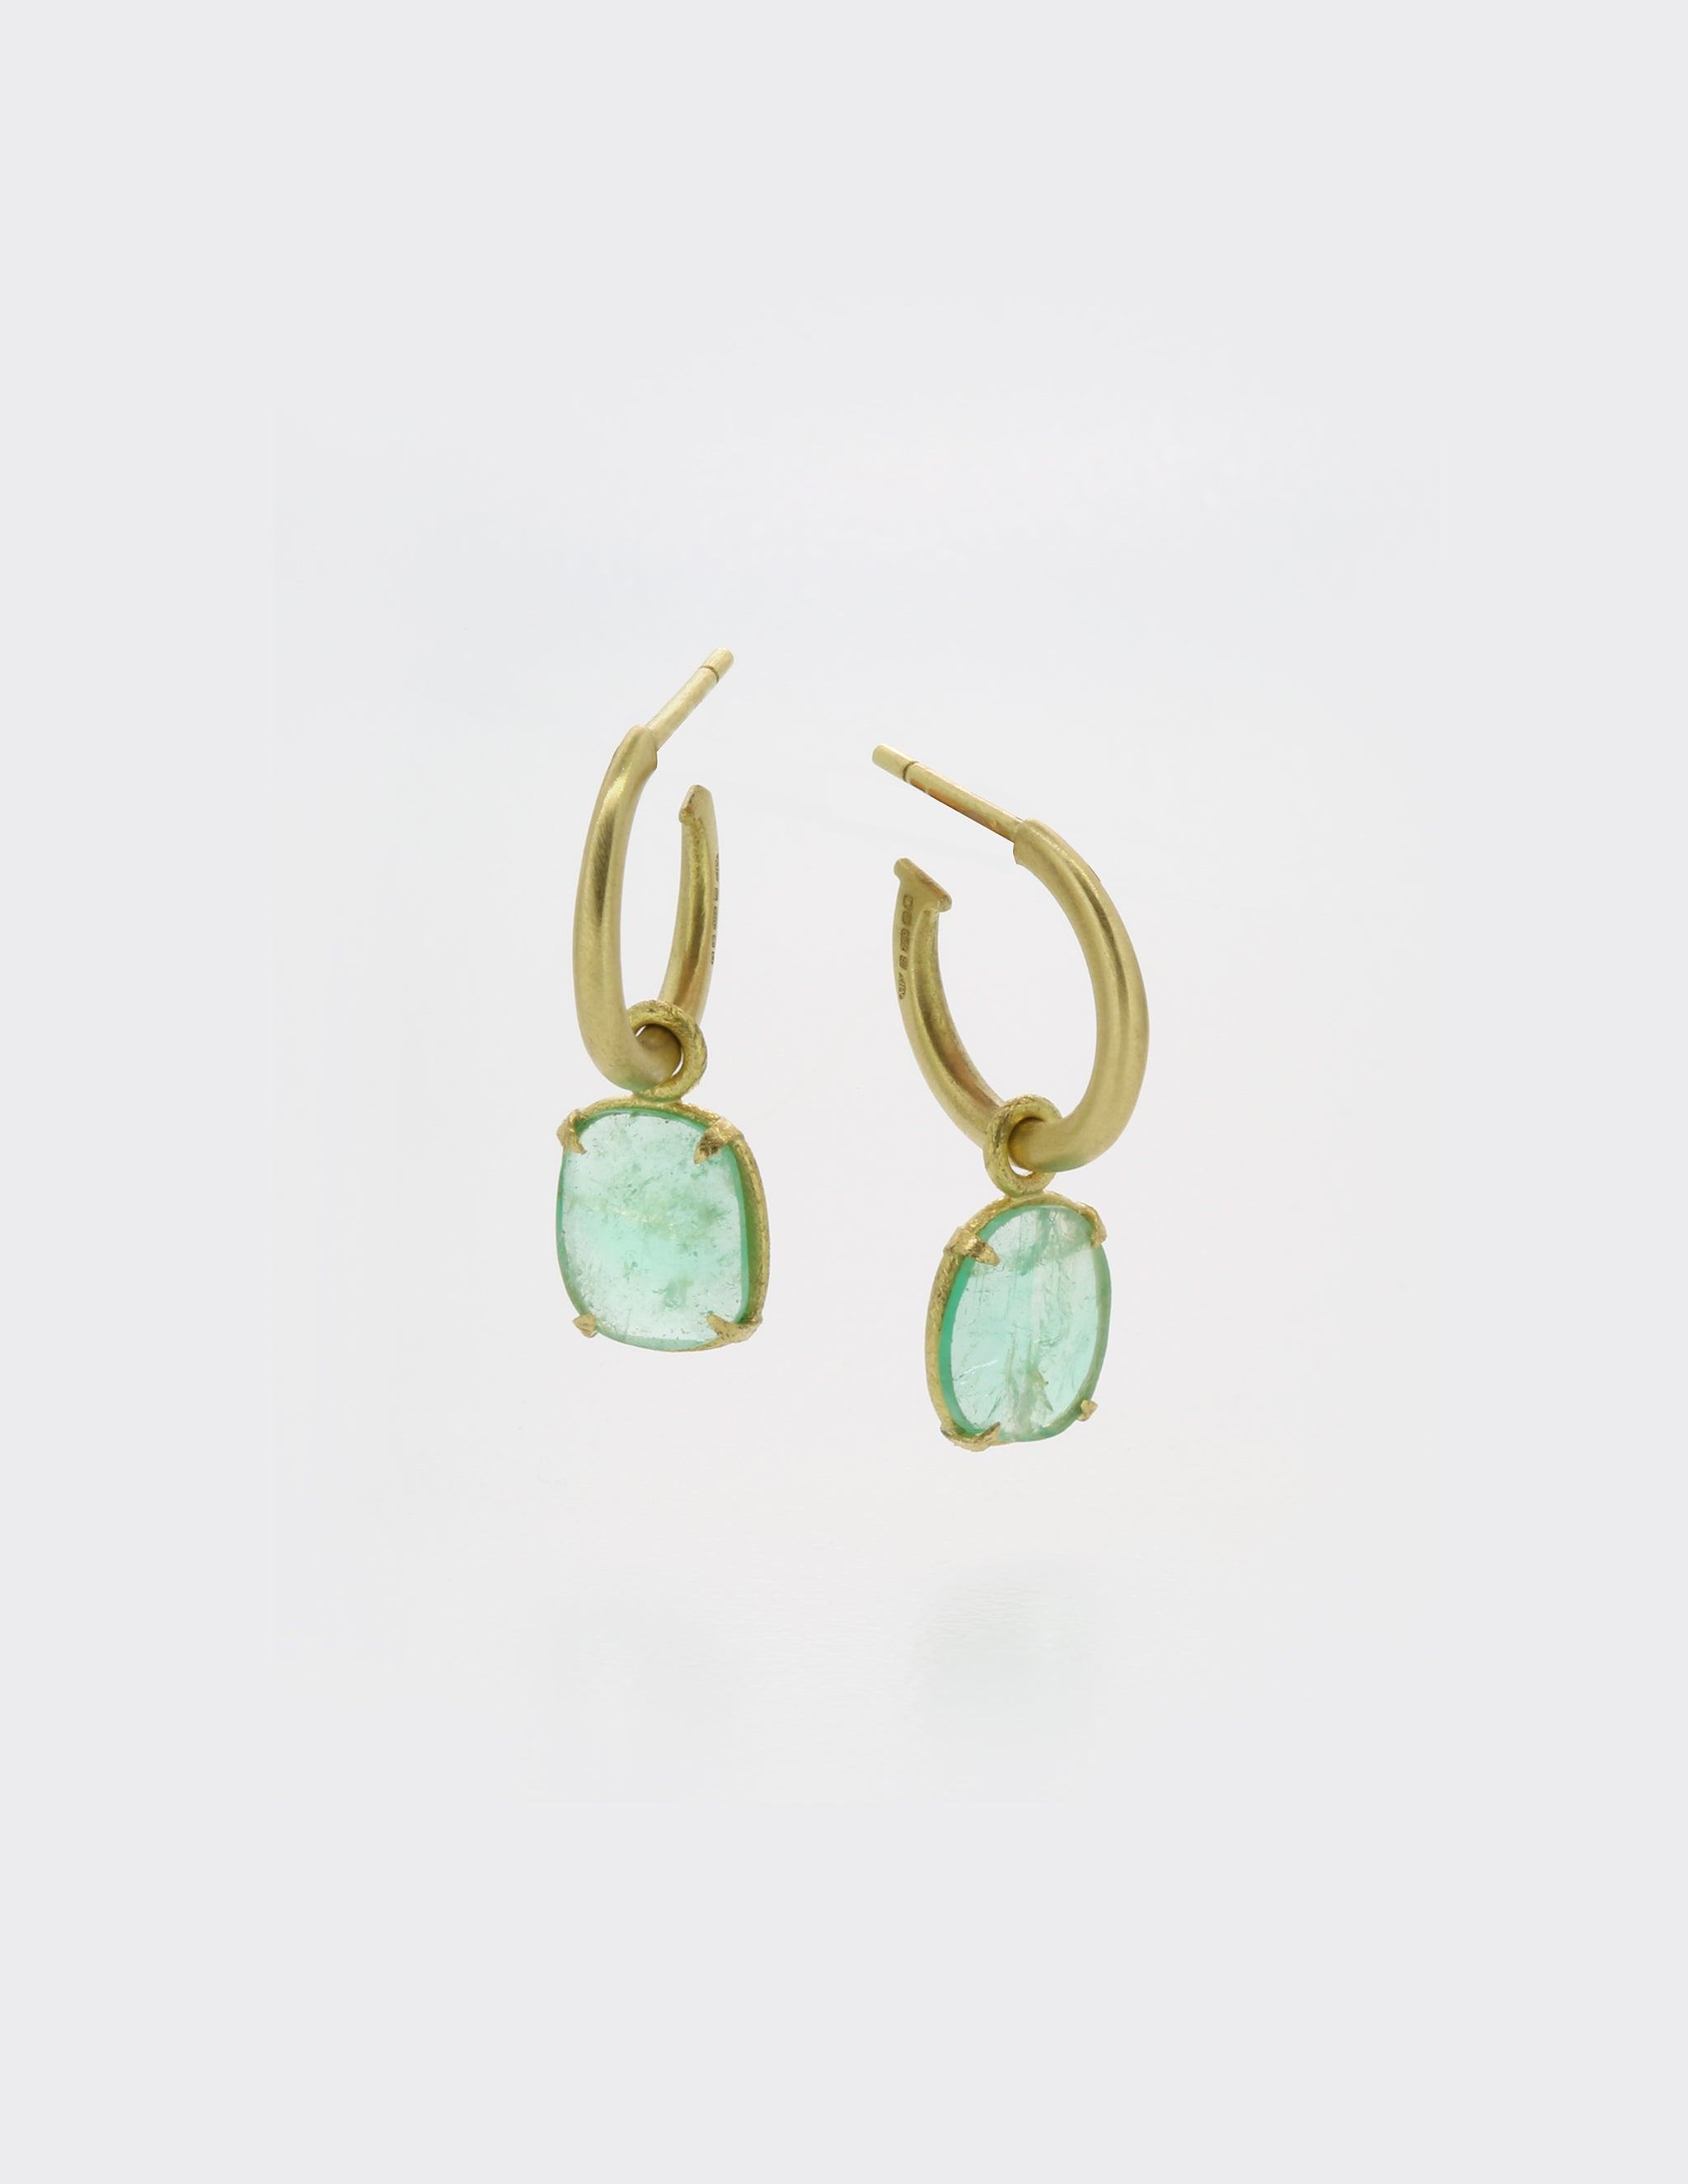 Emeralds on gold hoops